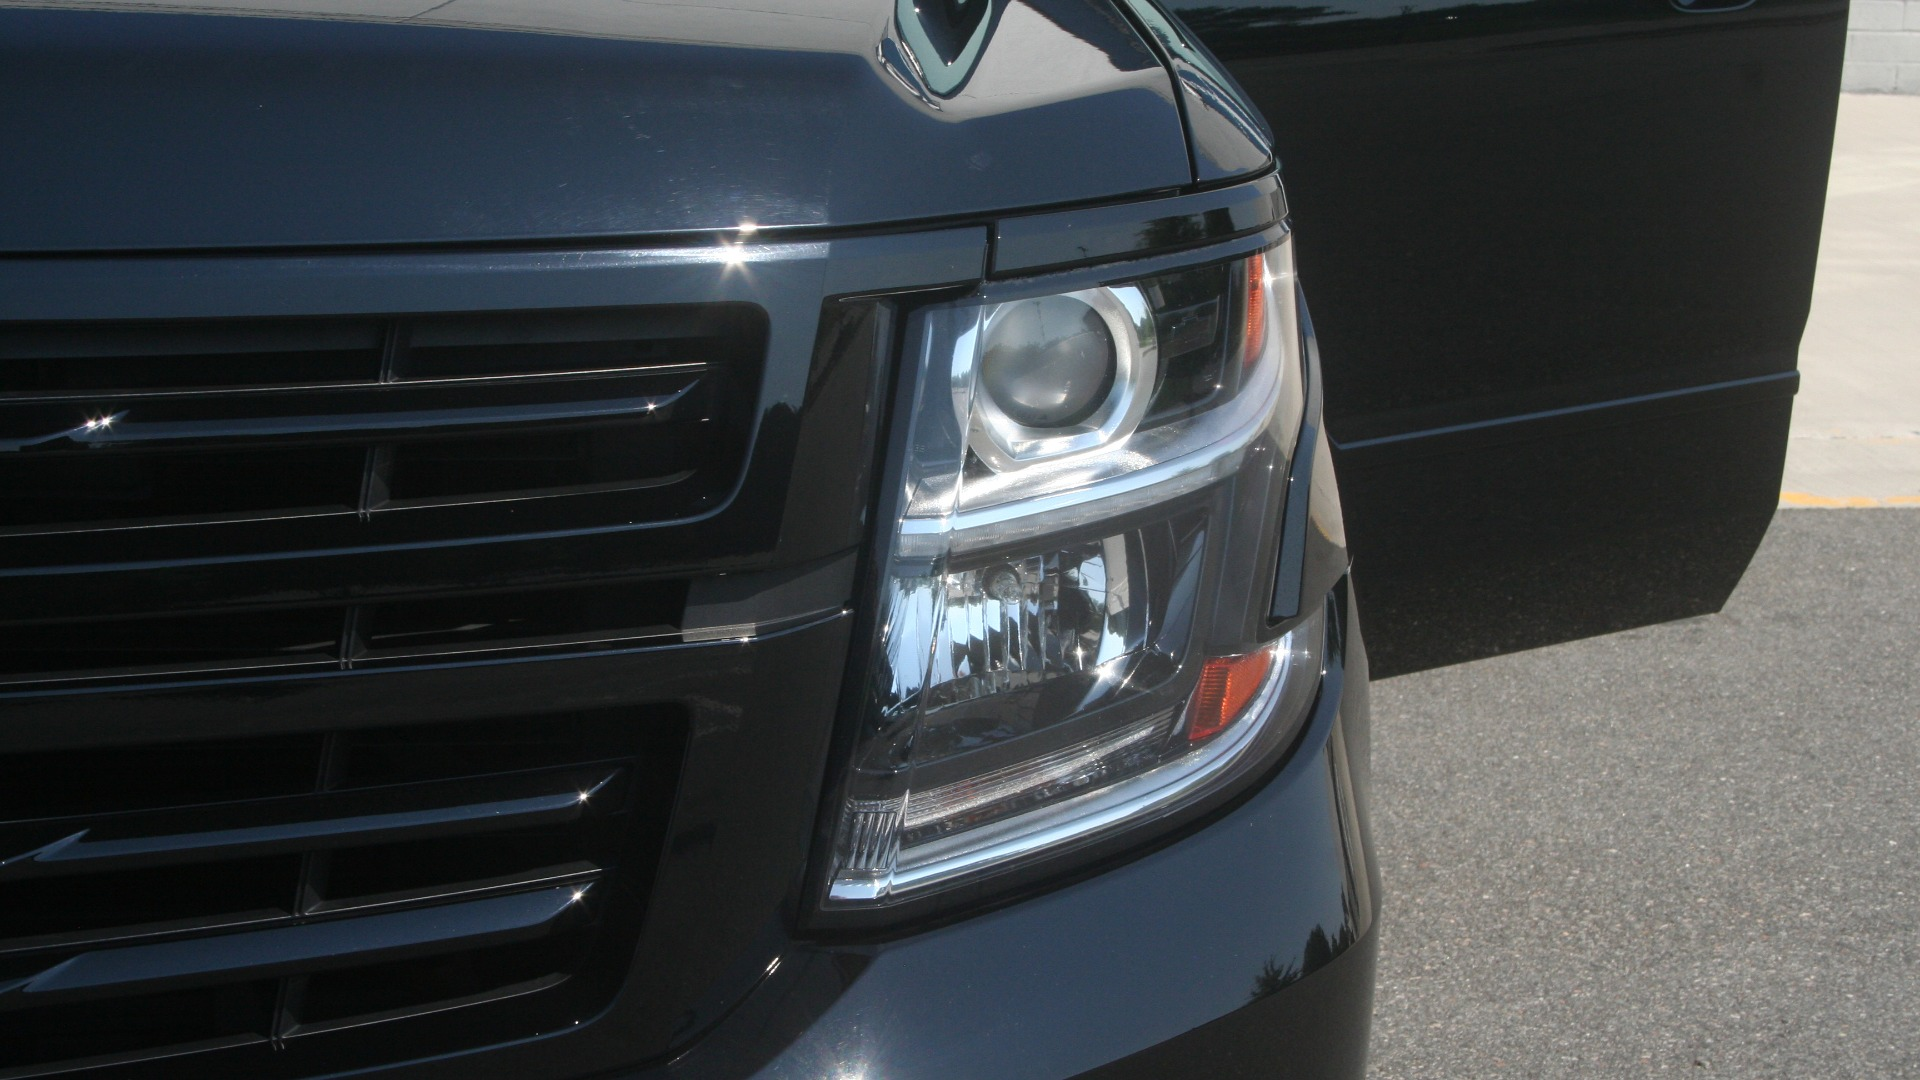 Used 2018 Chevrolet TAHOE PREMIER RST / 4X4 / NAV / BOSE / SUNROOF / 3-ROW / REARVIEW for sale $65,995 at Formula Imports in Charlotte NC 28227 14